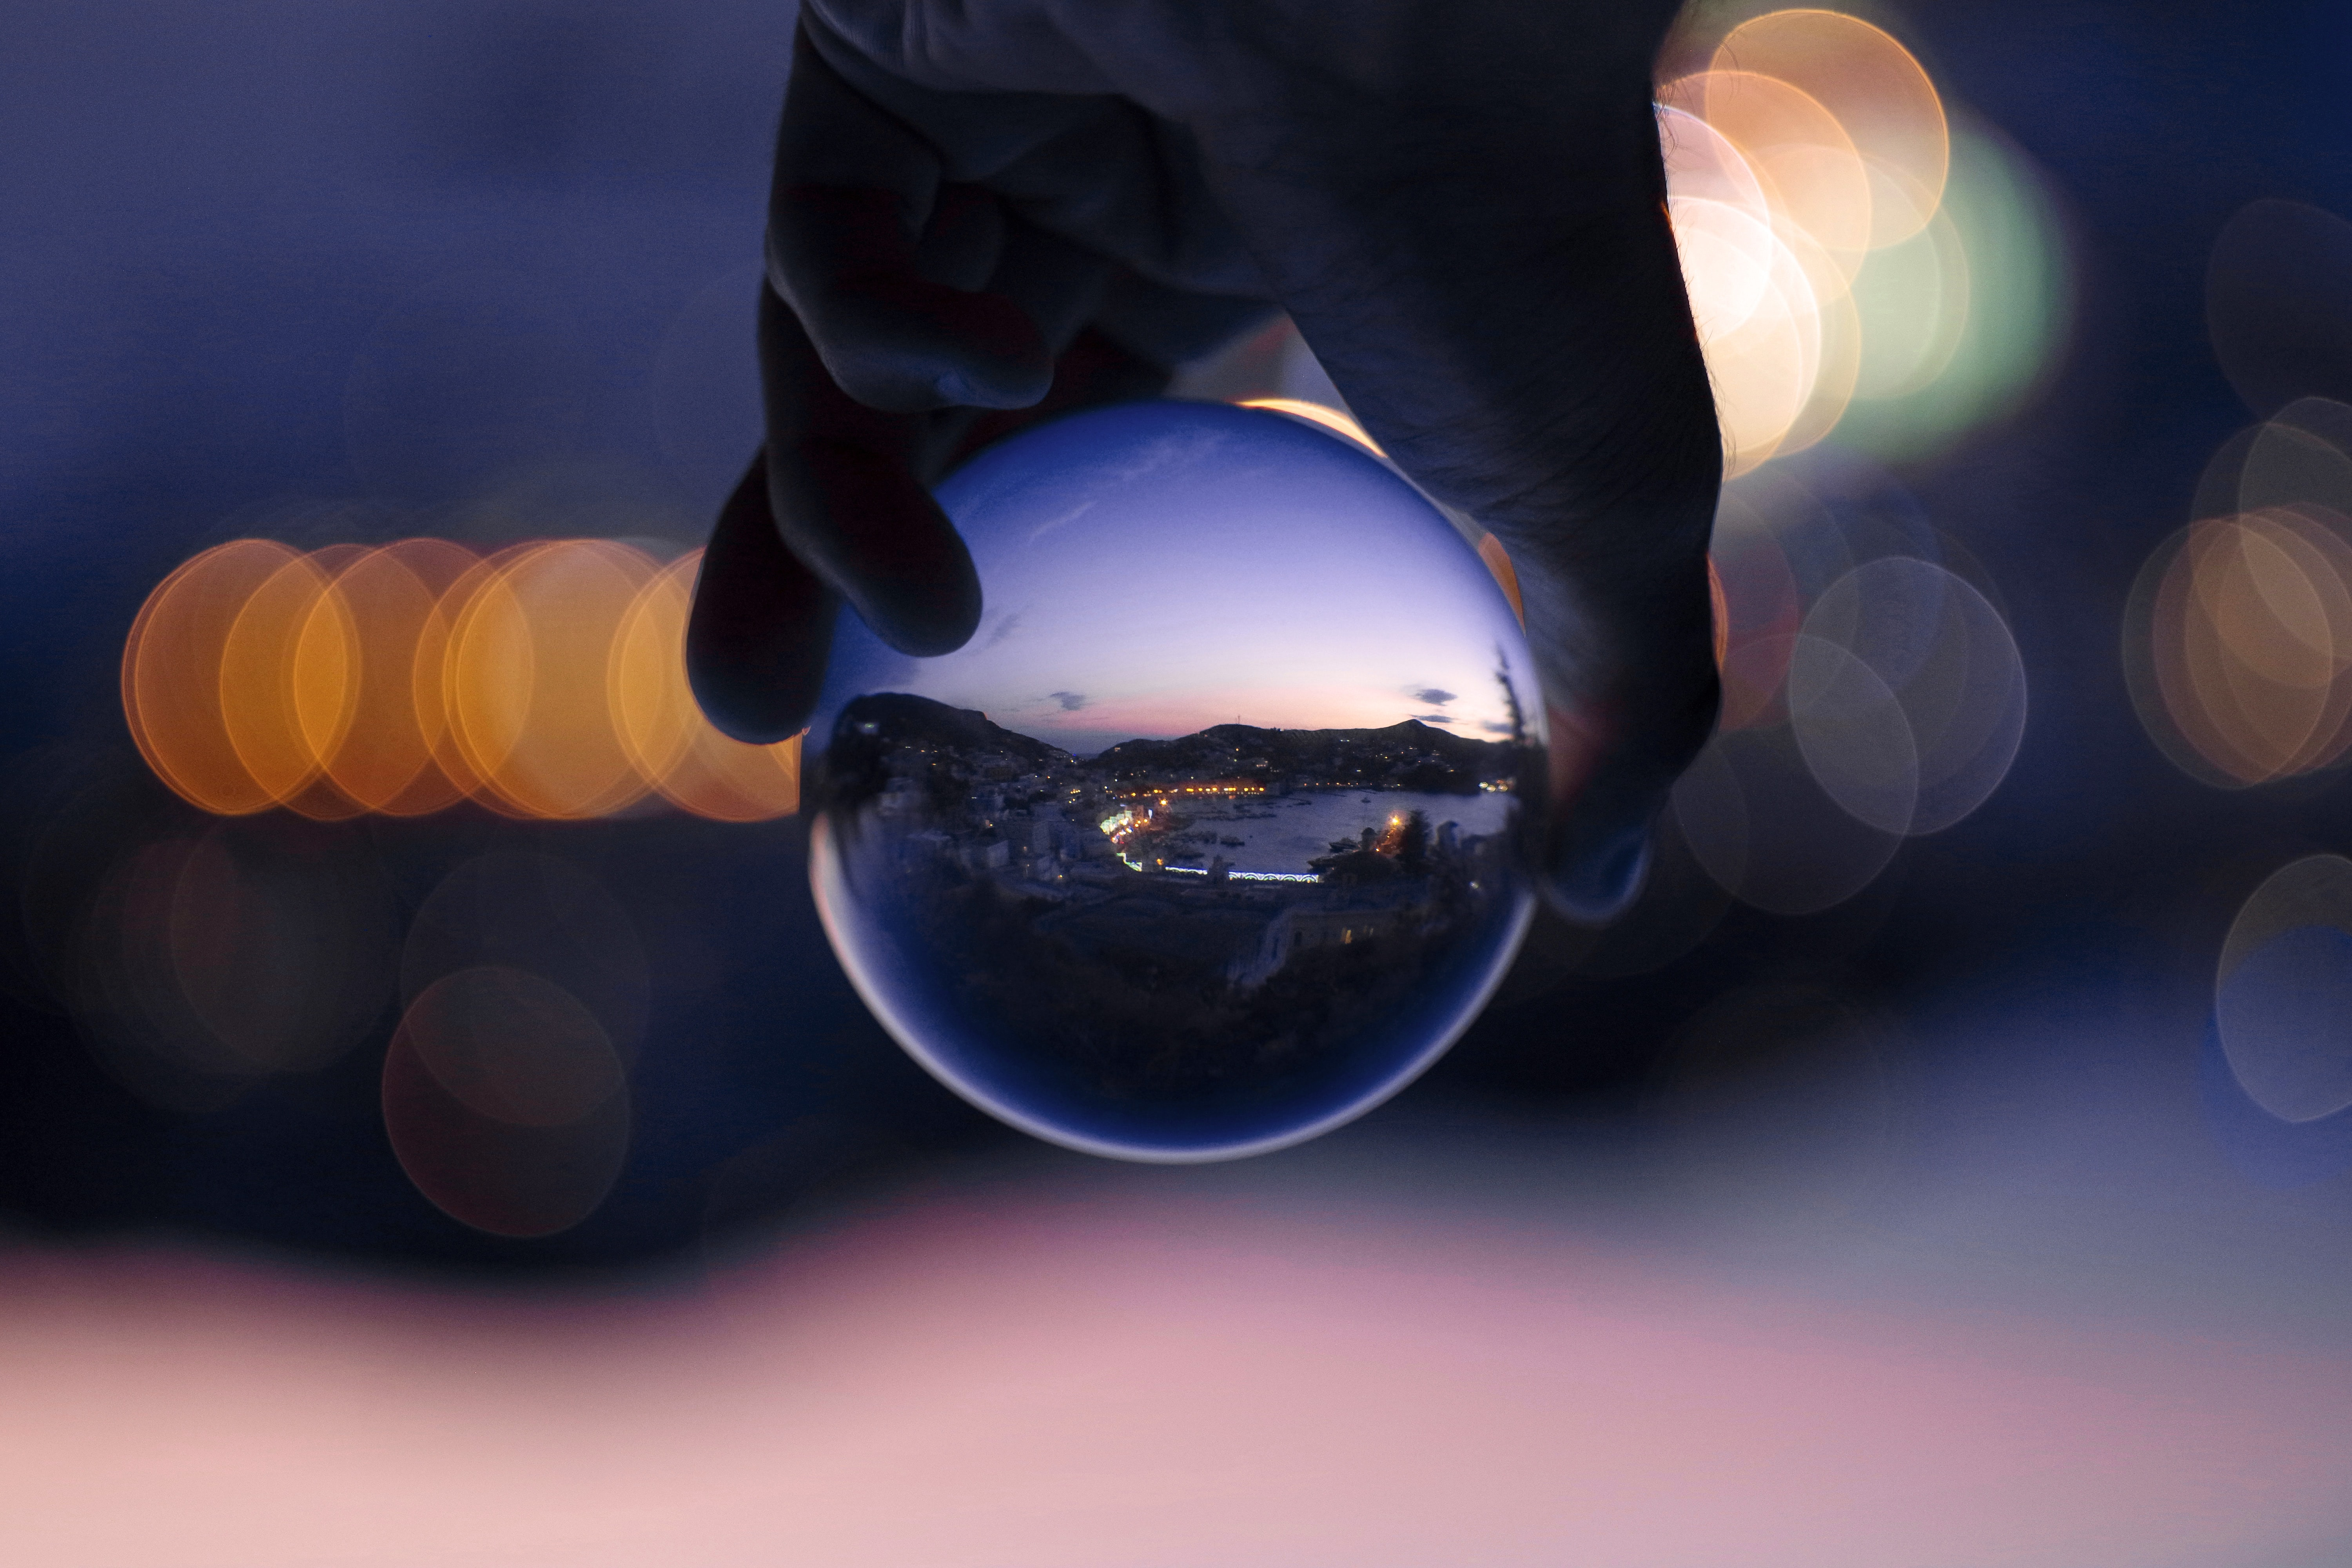 person holding baoding ball